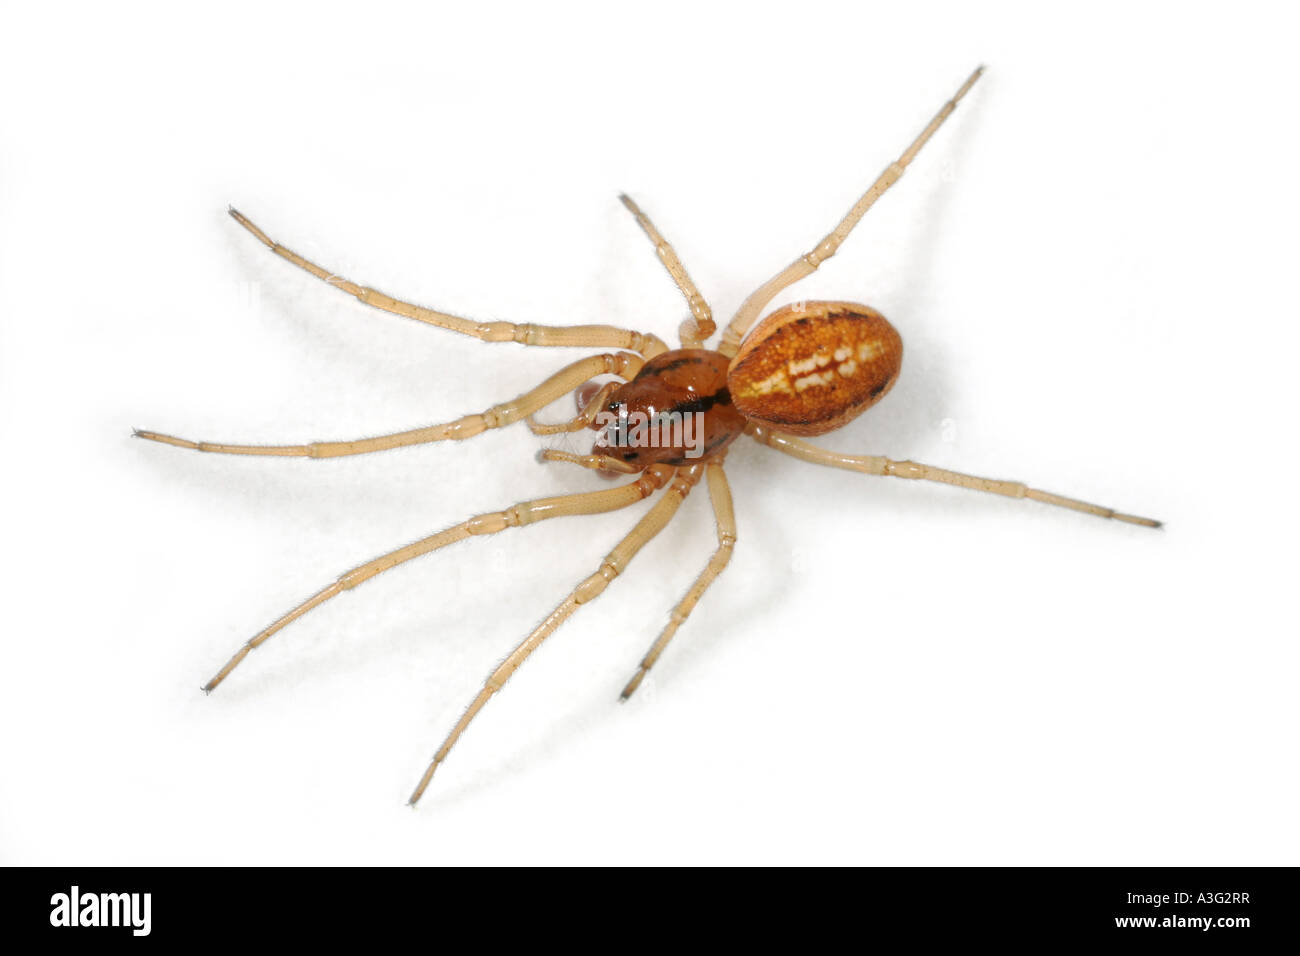 A Pachygnatha clercki spider, Tetragnathidae family, on white background. Stock Photo